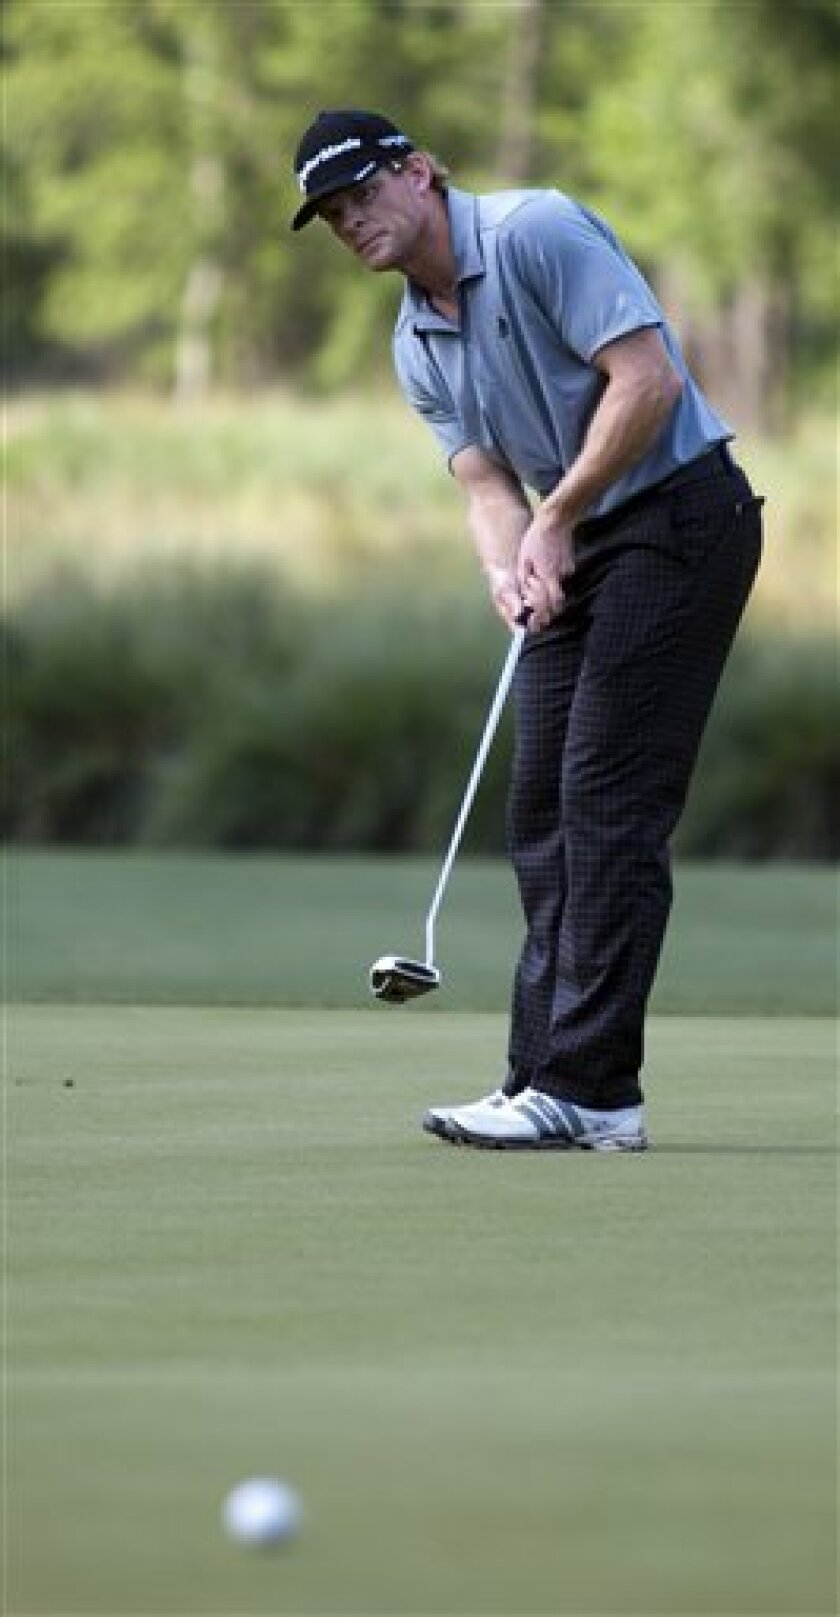 James Driscoll putts on the ninth green during the second round of the Houston Open golf tournament, Saturday, March 31, 2012, in Humble, Texas. (AP Photo/Eric Kayne)